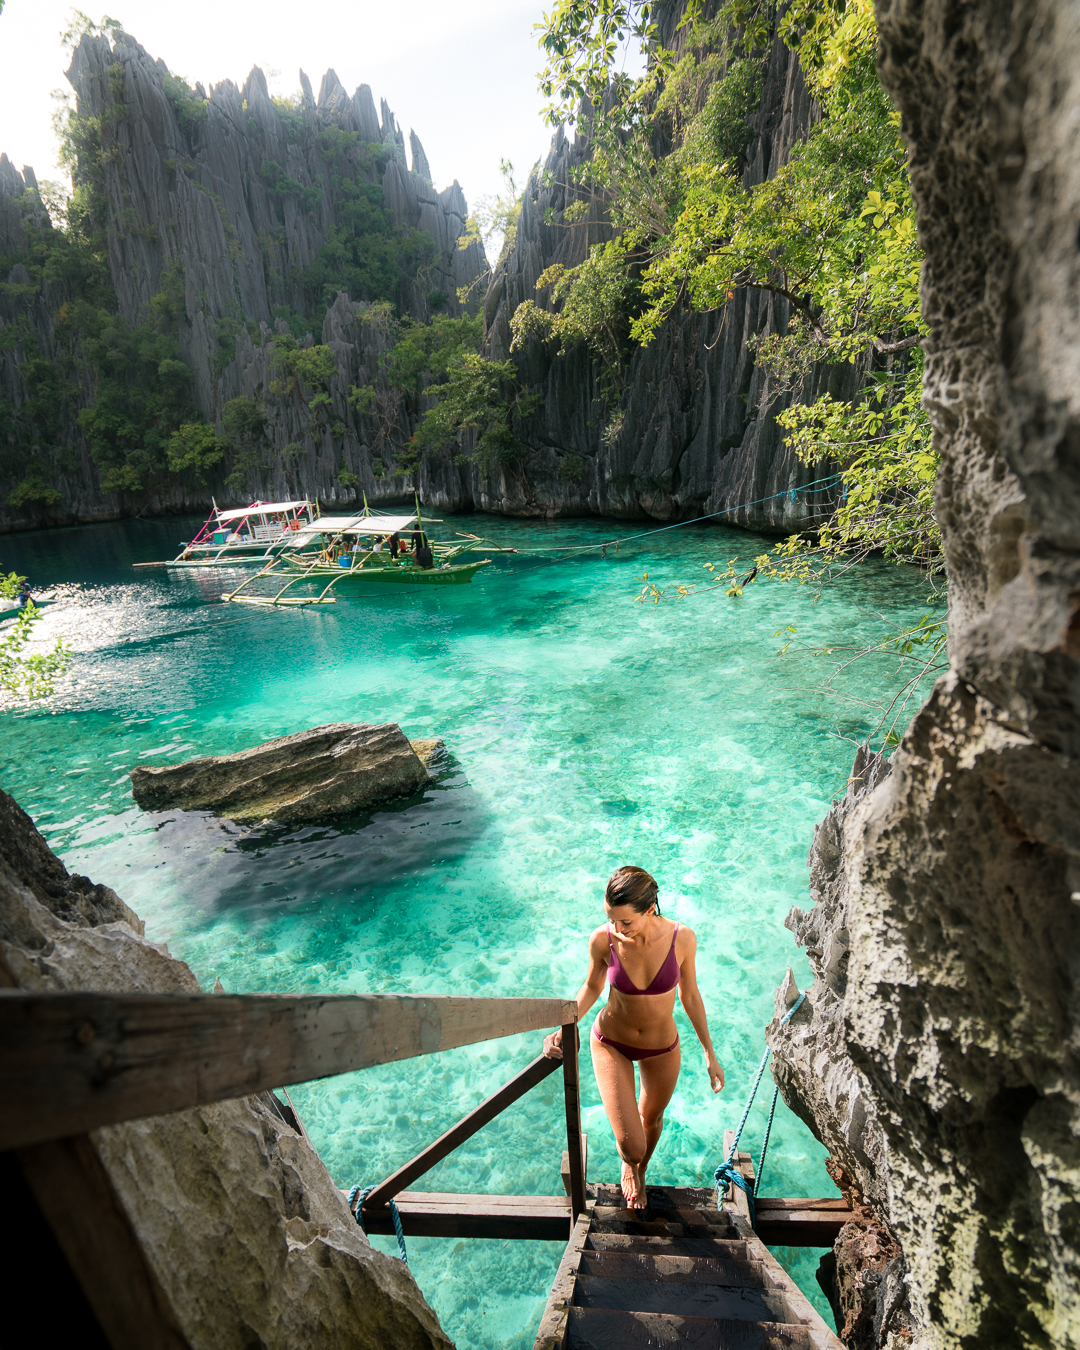 Walking on the staircase that separates the two bodies of water at Twin Lagoon in Coron, Philippines.